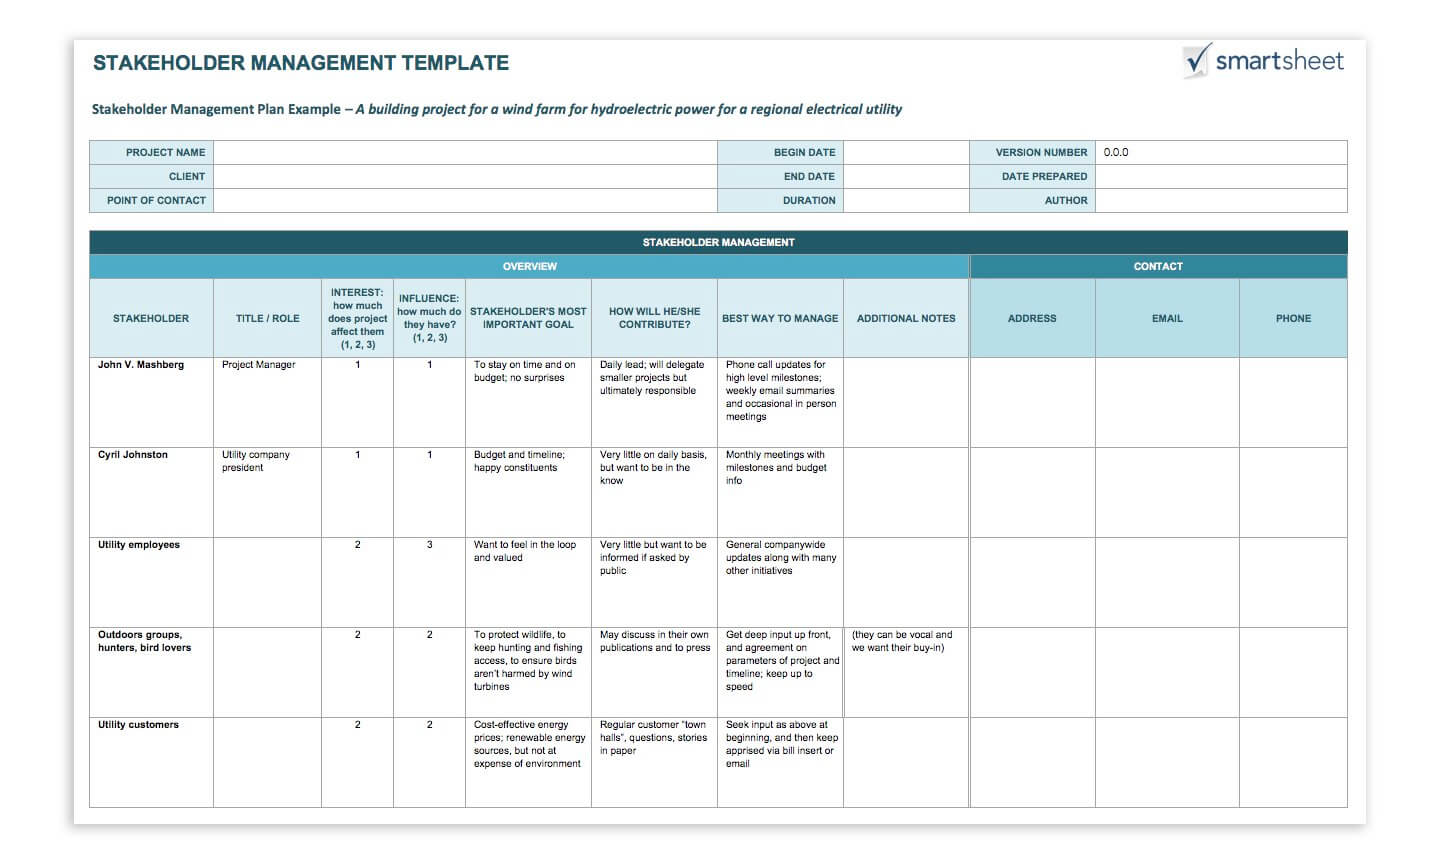 Stakeholder Management Template